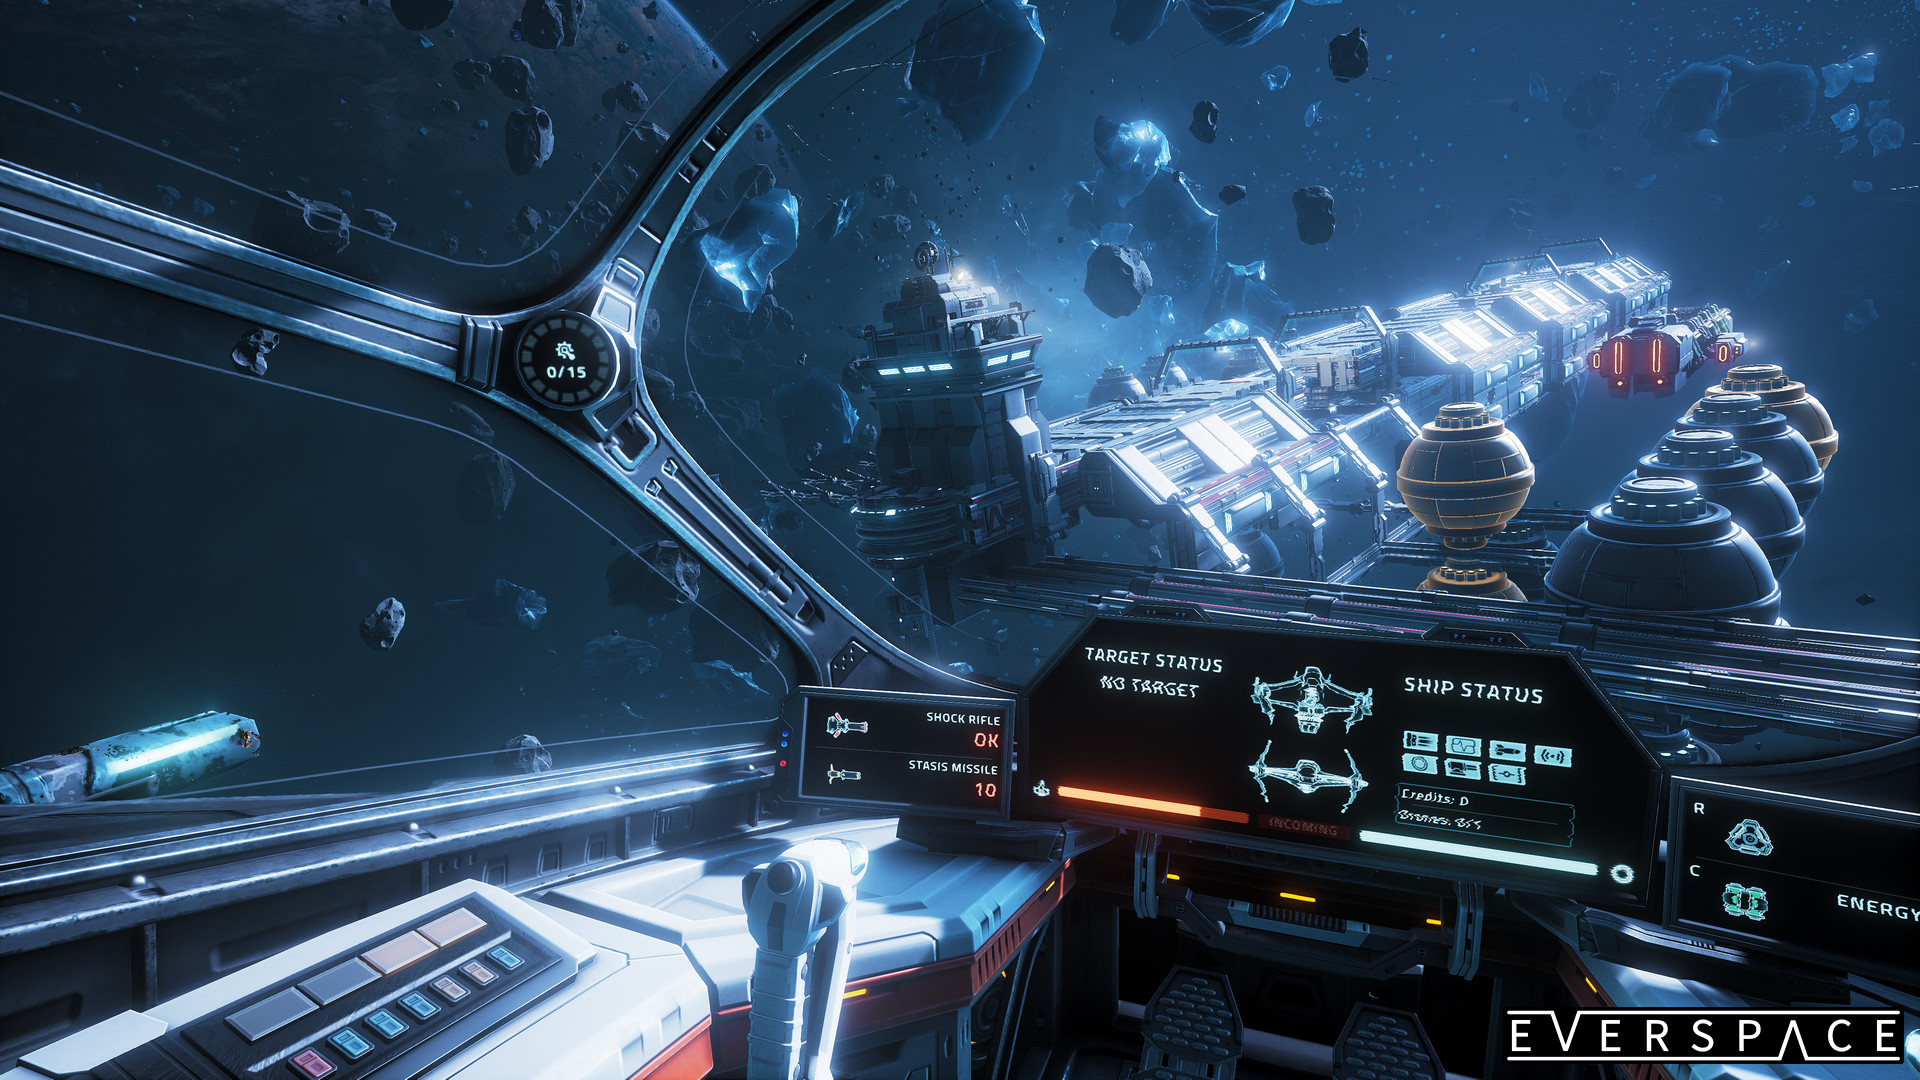 Everspace Screenshot 2